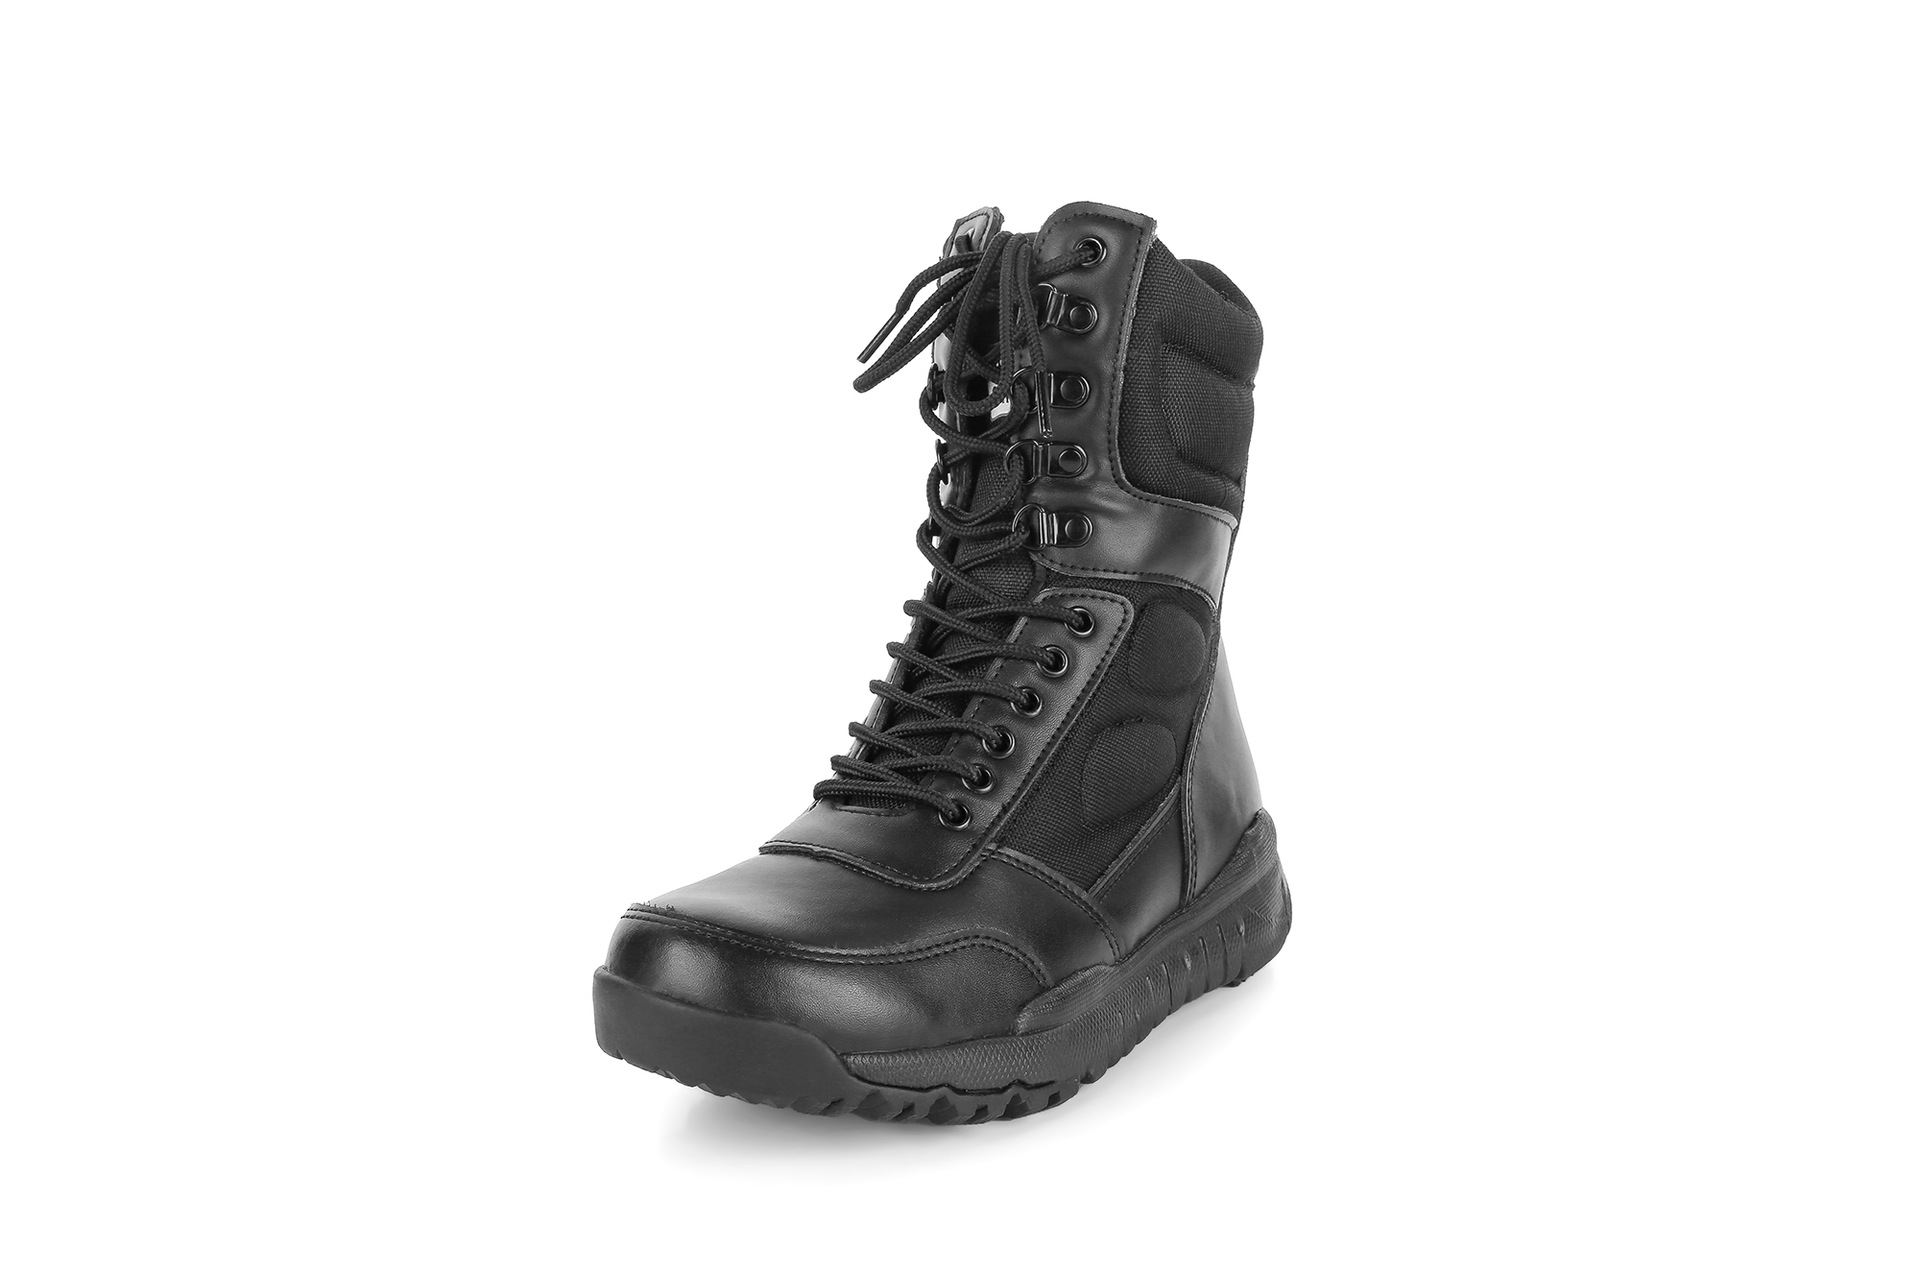 Ultra-Light Combat Boots Oriental Wolf Ultra-Light Combat Boots SFB Canvas Breathable Summer Fighting And Training Boots Outdoor